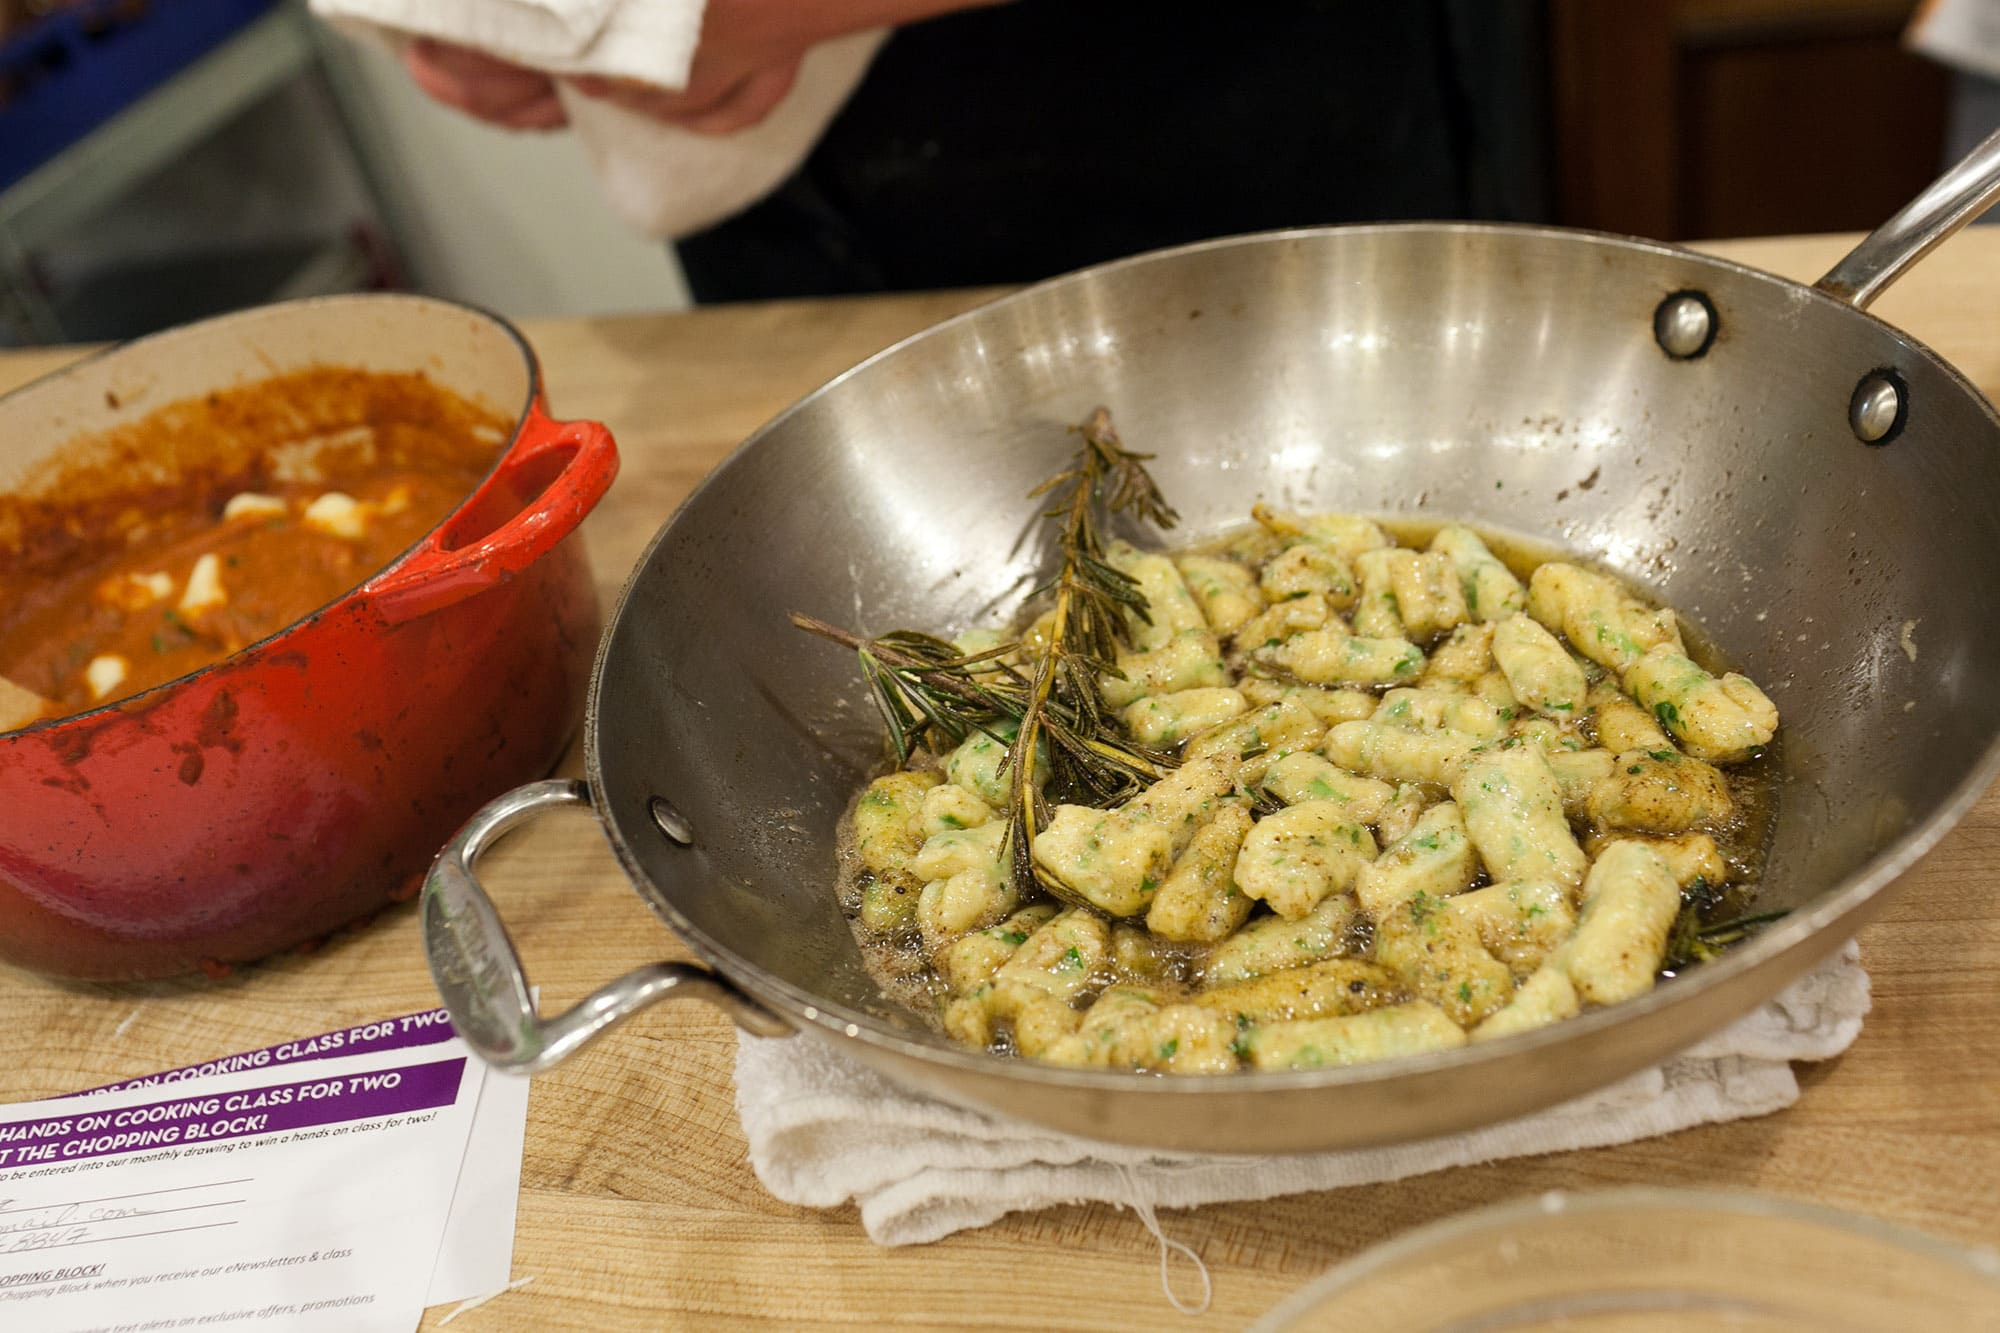 Ricotta gnocchi with brown butter sauce from the Fall Gnocchi Making Class at the Lincoln Square Chopping Block in Chicago, Illinois